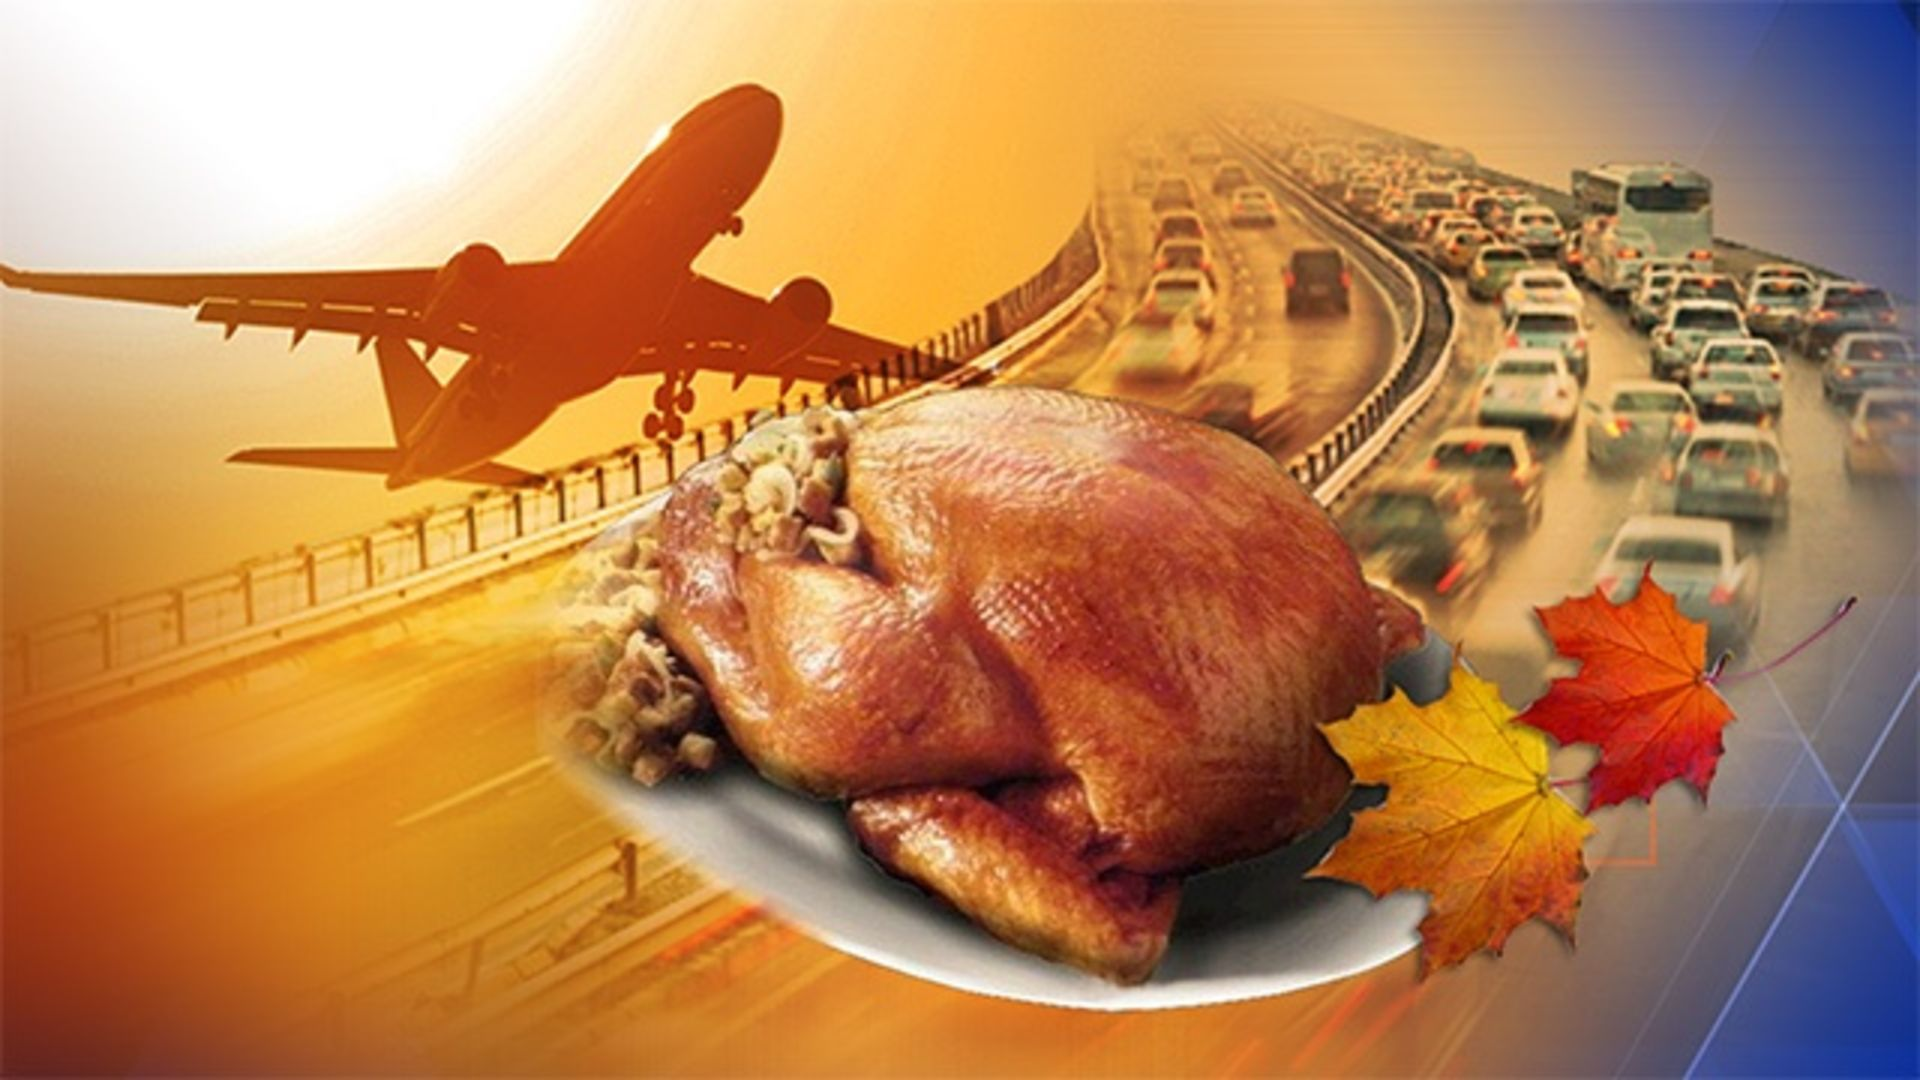 EASING THE THANKSGIVING TRAVEL WOES